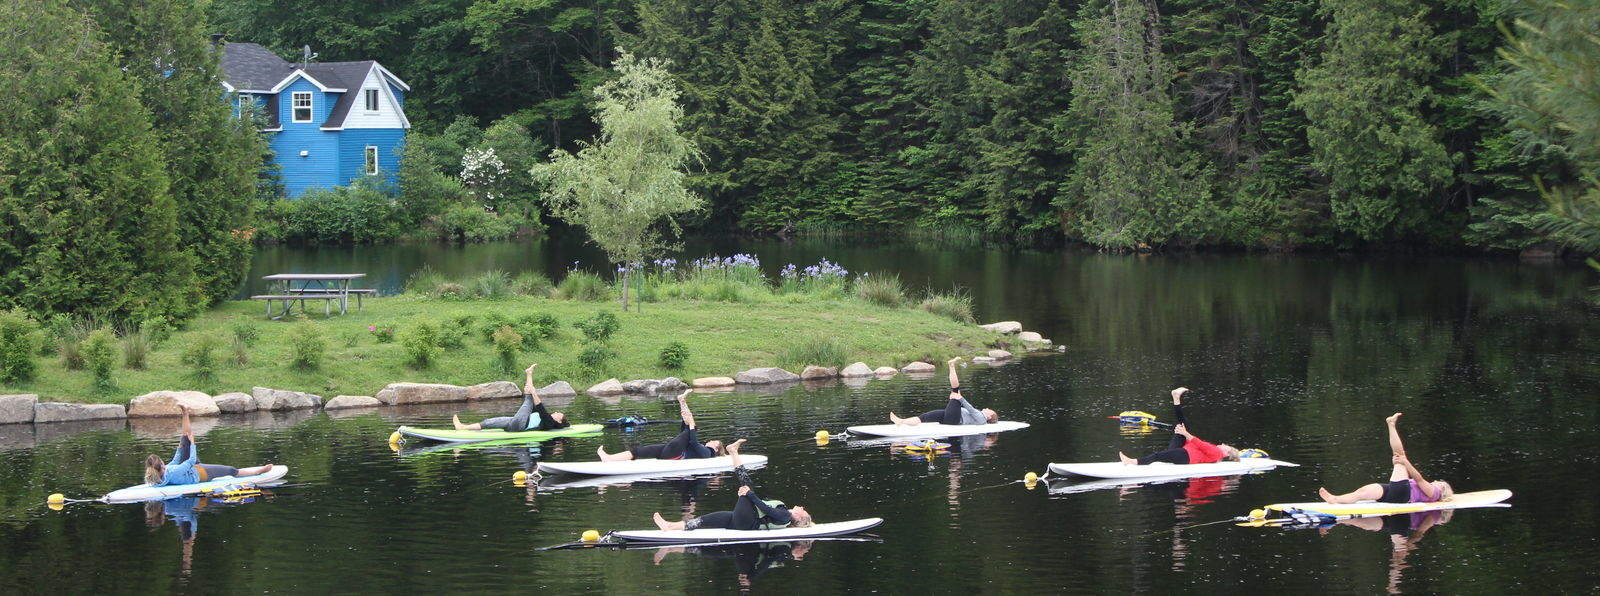 Sup yoga à Morin Heights